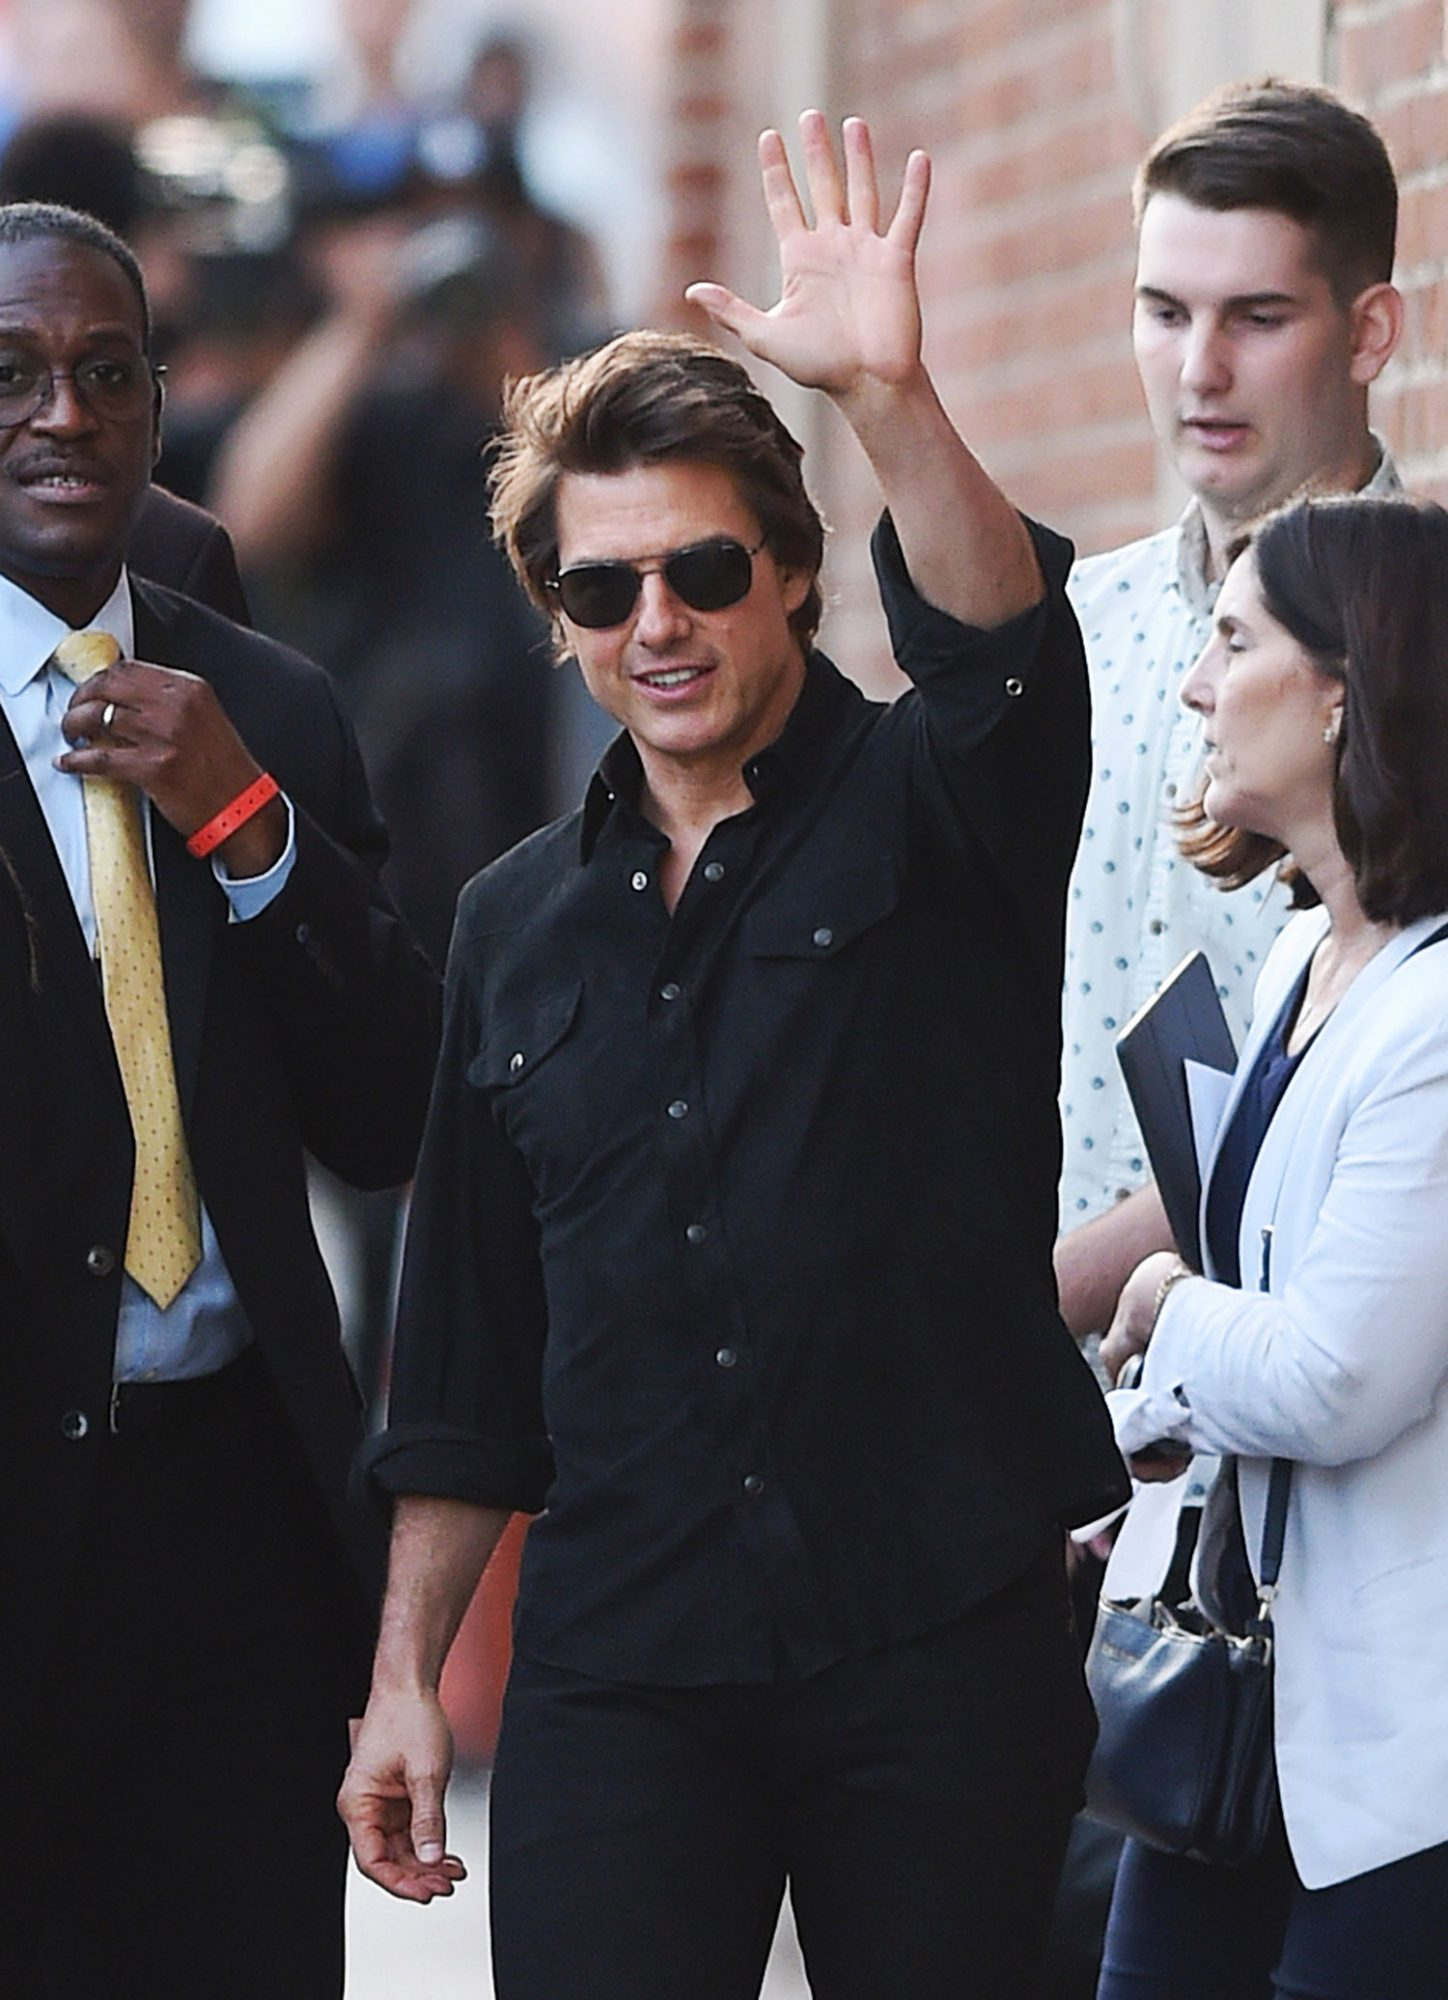 Tom Cruise Leaving the 'Jimmy Kimmel Live' Show